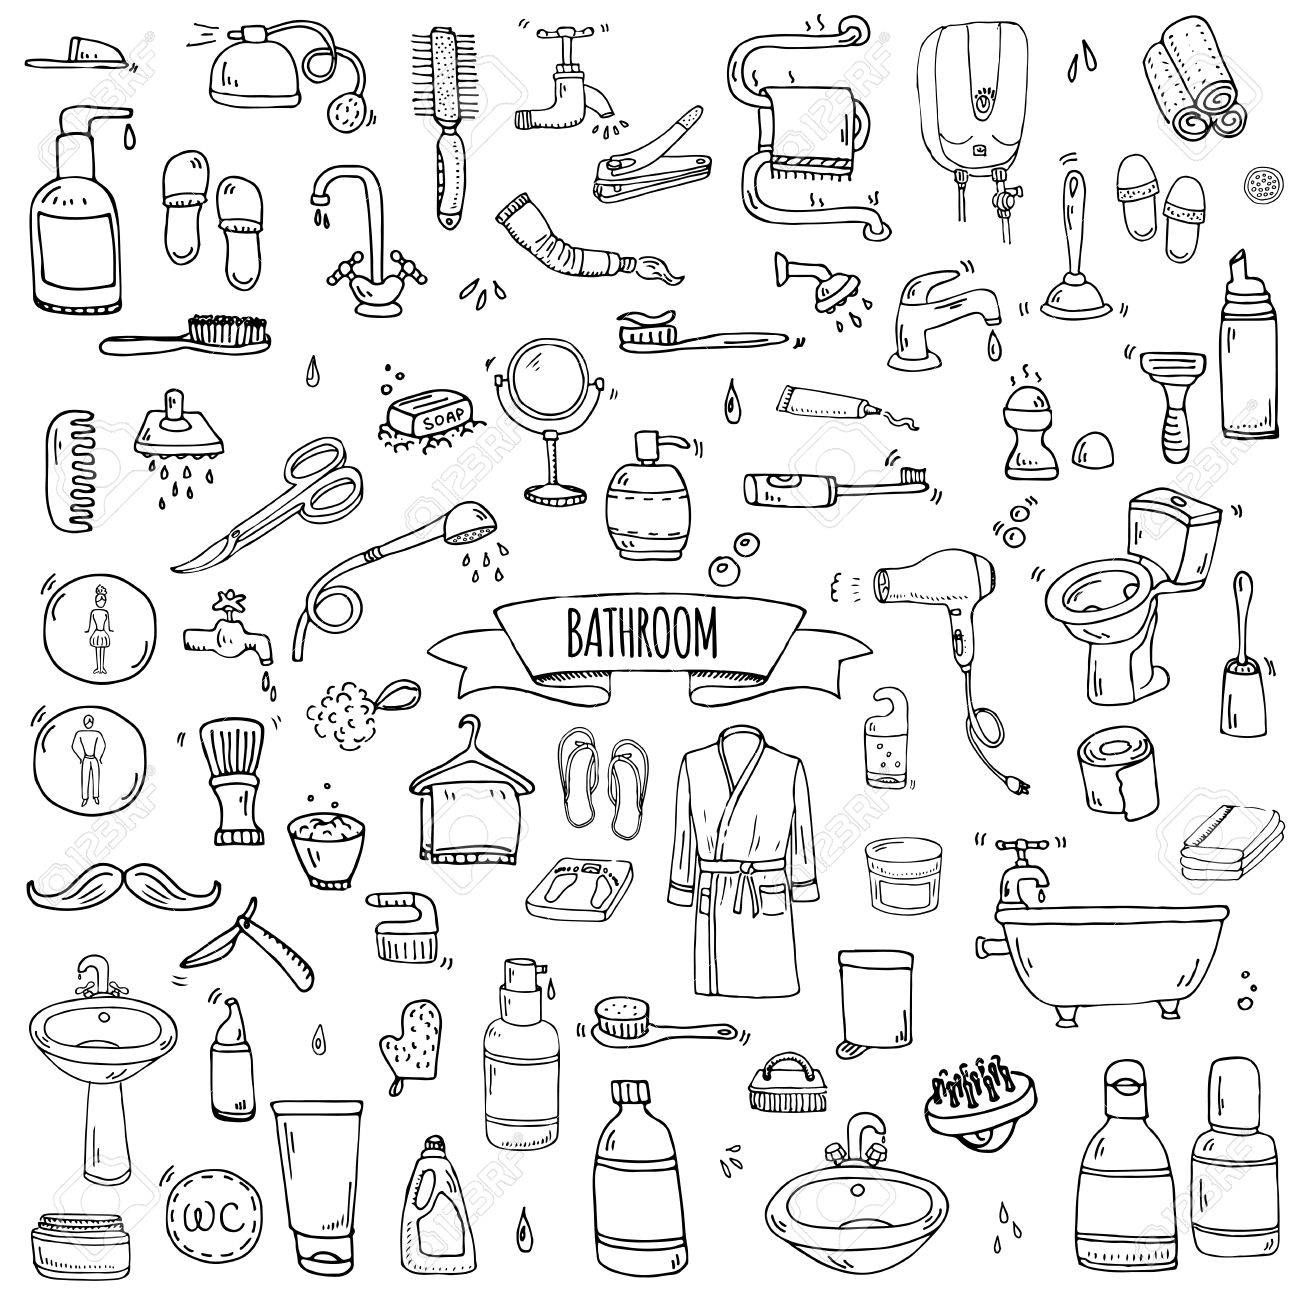 Hand Drawn Doodle Bathroom Related Icons Set Vector Illustration Home Bath Symbols Collection Cartoon Elements On